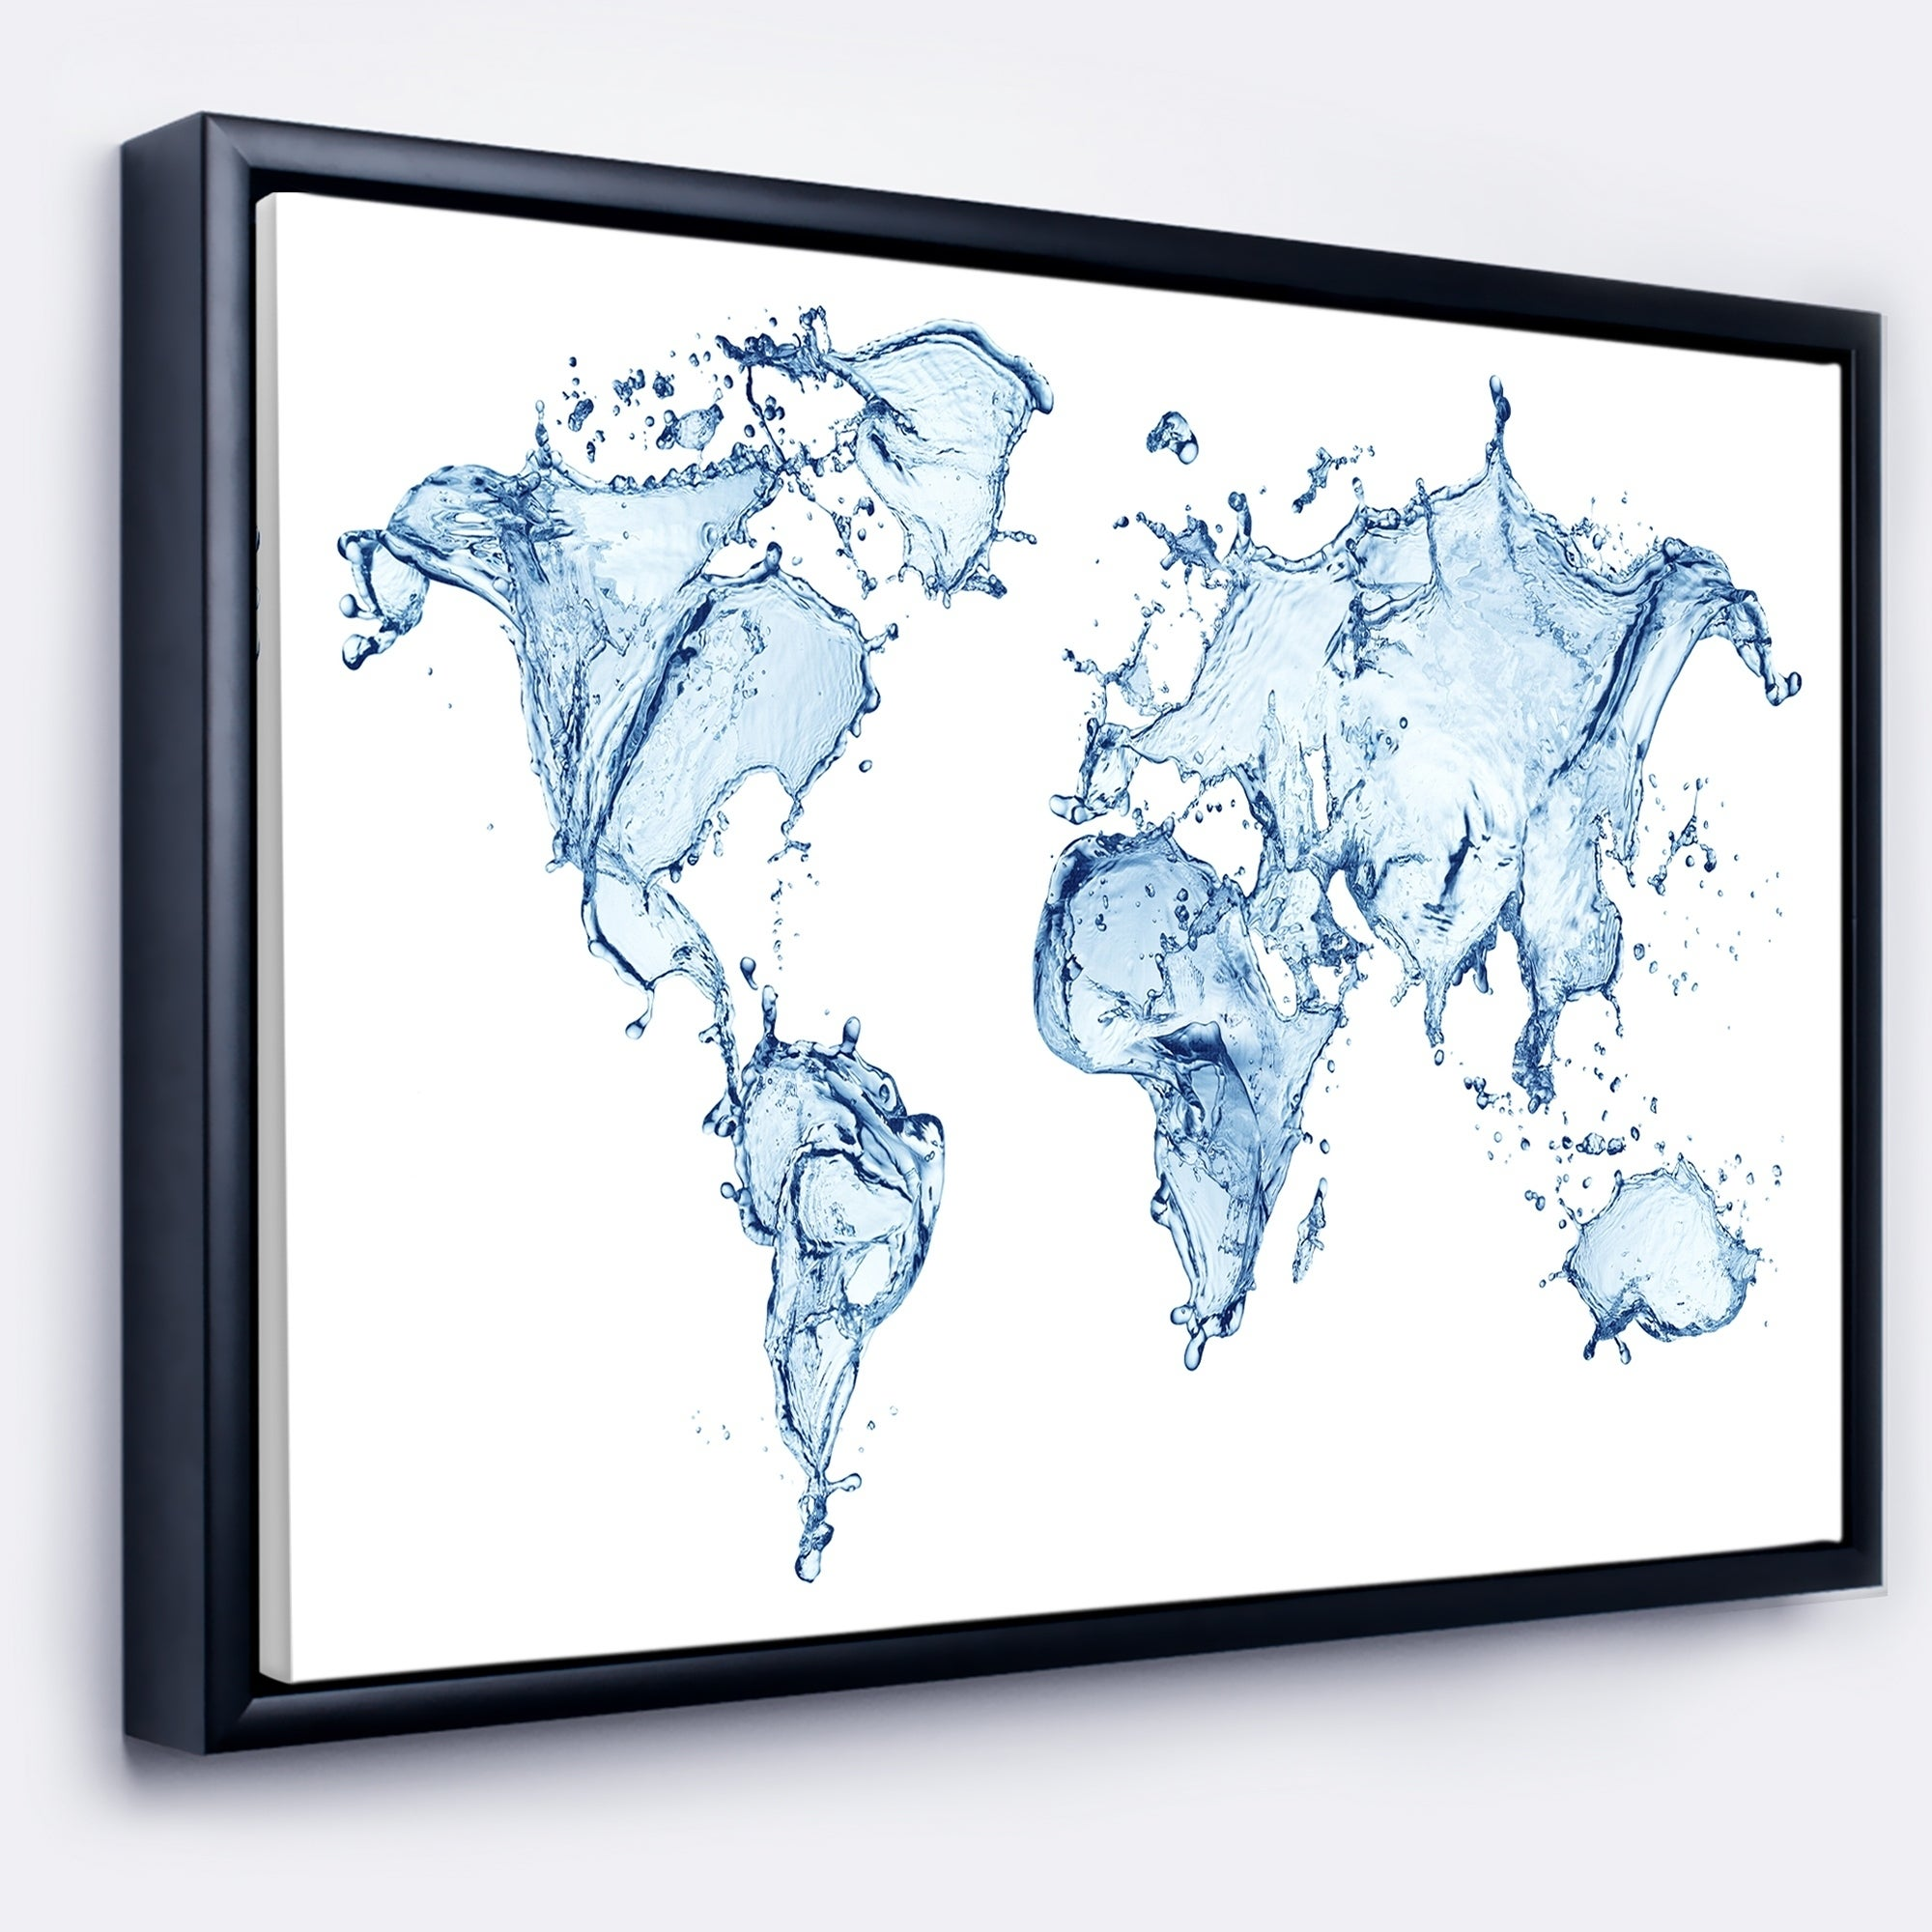 Shop designart world map water splash abstract map framed canvas shop designart world map water splash abstract map framed canvas art print free shipping today overstock 18953414 gumiabroncs Images